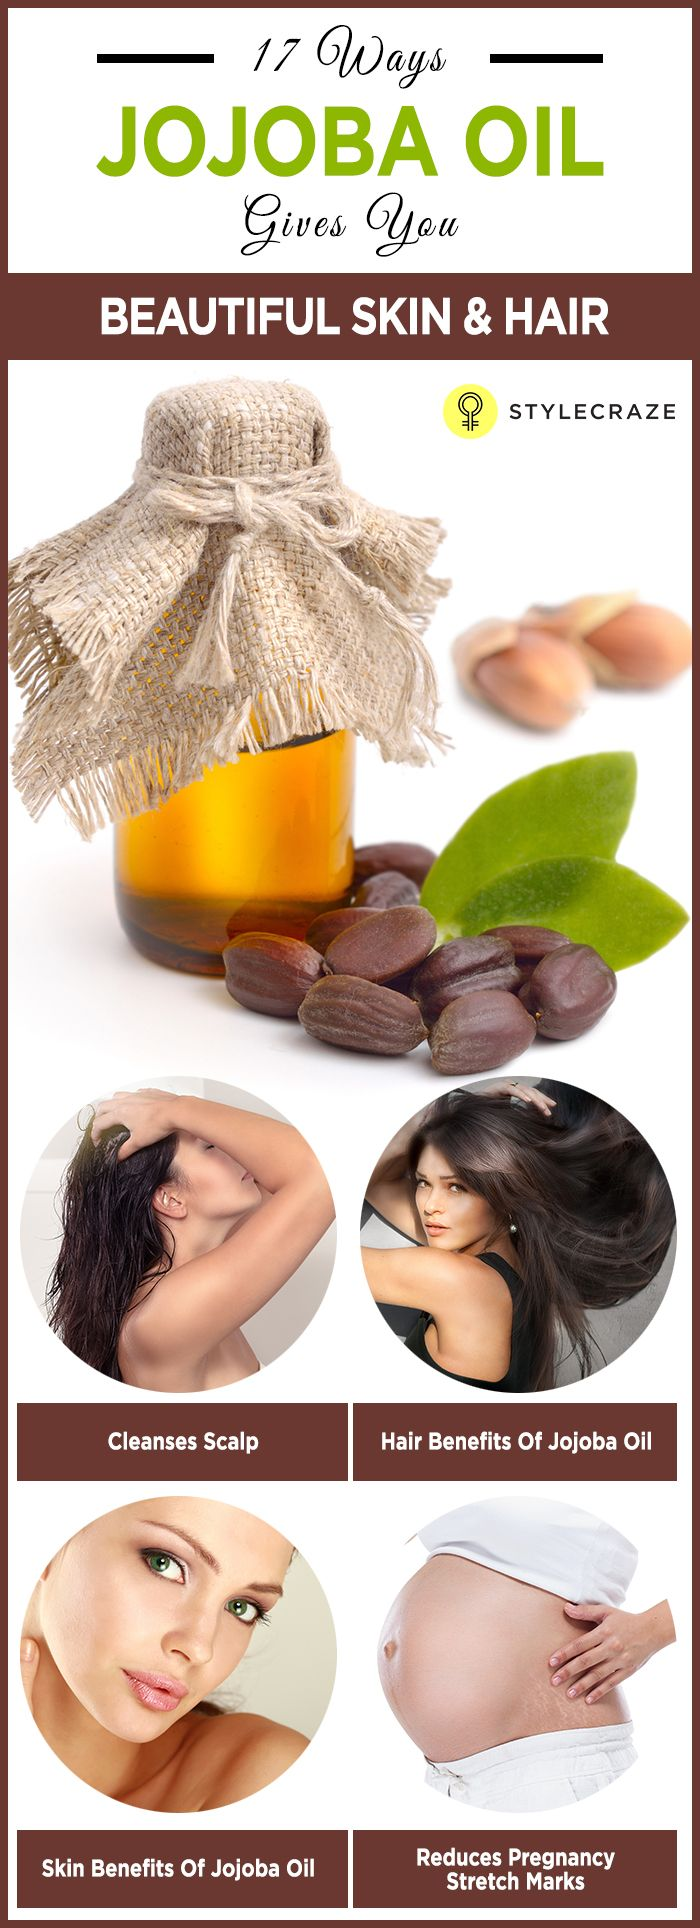 Be it a dry scalp or chapped lips – jojoba oil has a solution for everything. Jojoba oil is indeed a blessing as it is rich in important vitamins and minerals, including vitamins E and B-complex, zinc, copper, selenium, chromium, and iodine. And guess what? It suits all skin types. This amazing oil offers a plethora of benefits. Read on to know more. #Beautytips